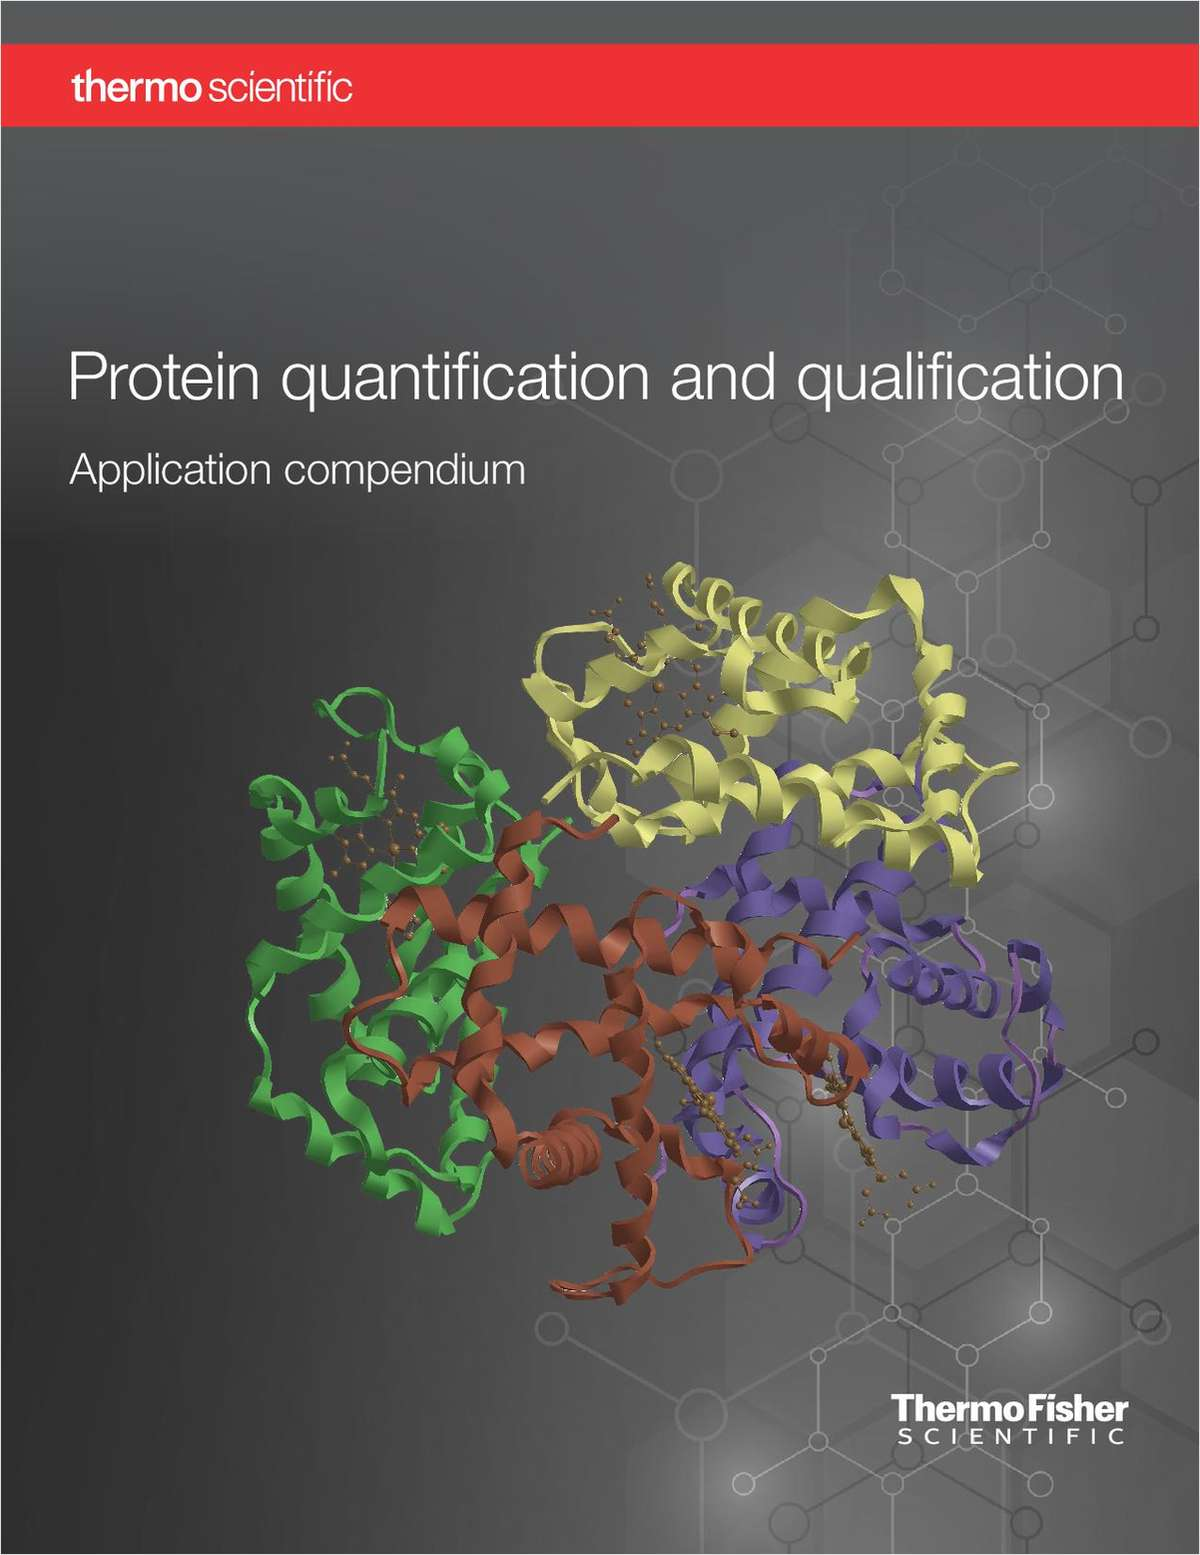 Protein quantification and qualification